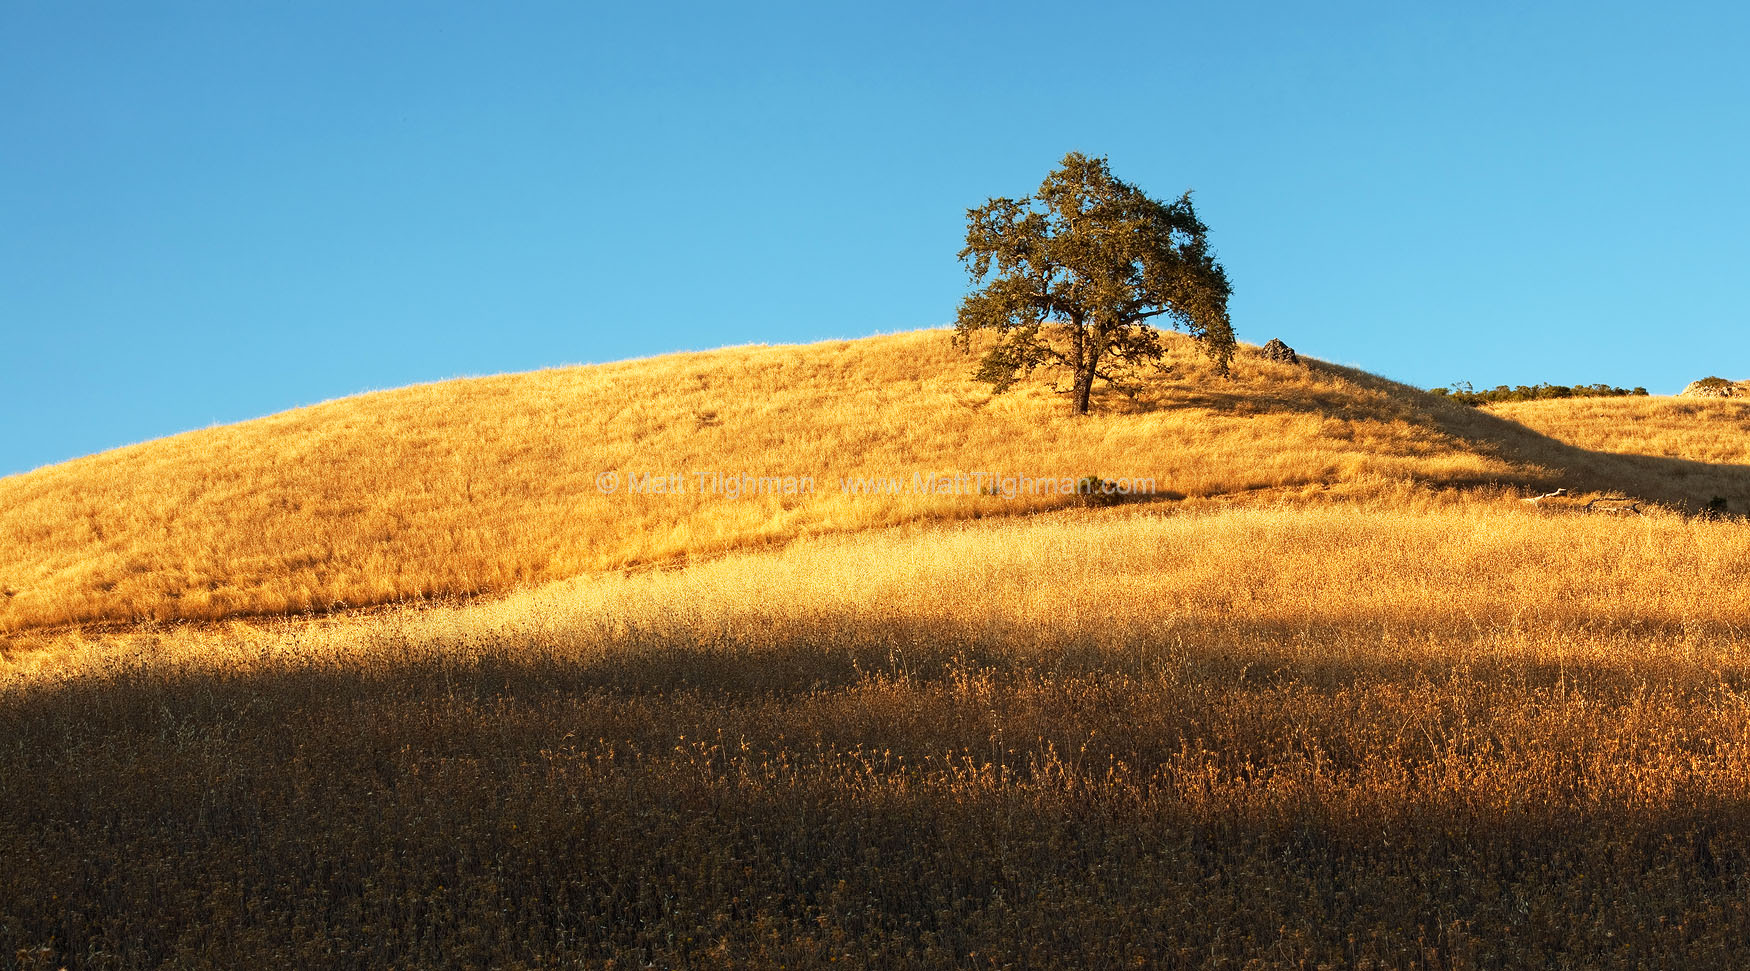 Fine art stock photograph of a lone oak tree in Monte Bello Open Space. Just this one tree breaks up the beautiful monotony of the California chaparral hillside.